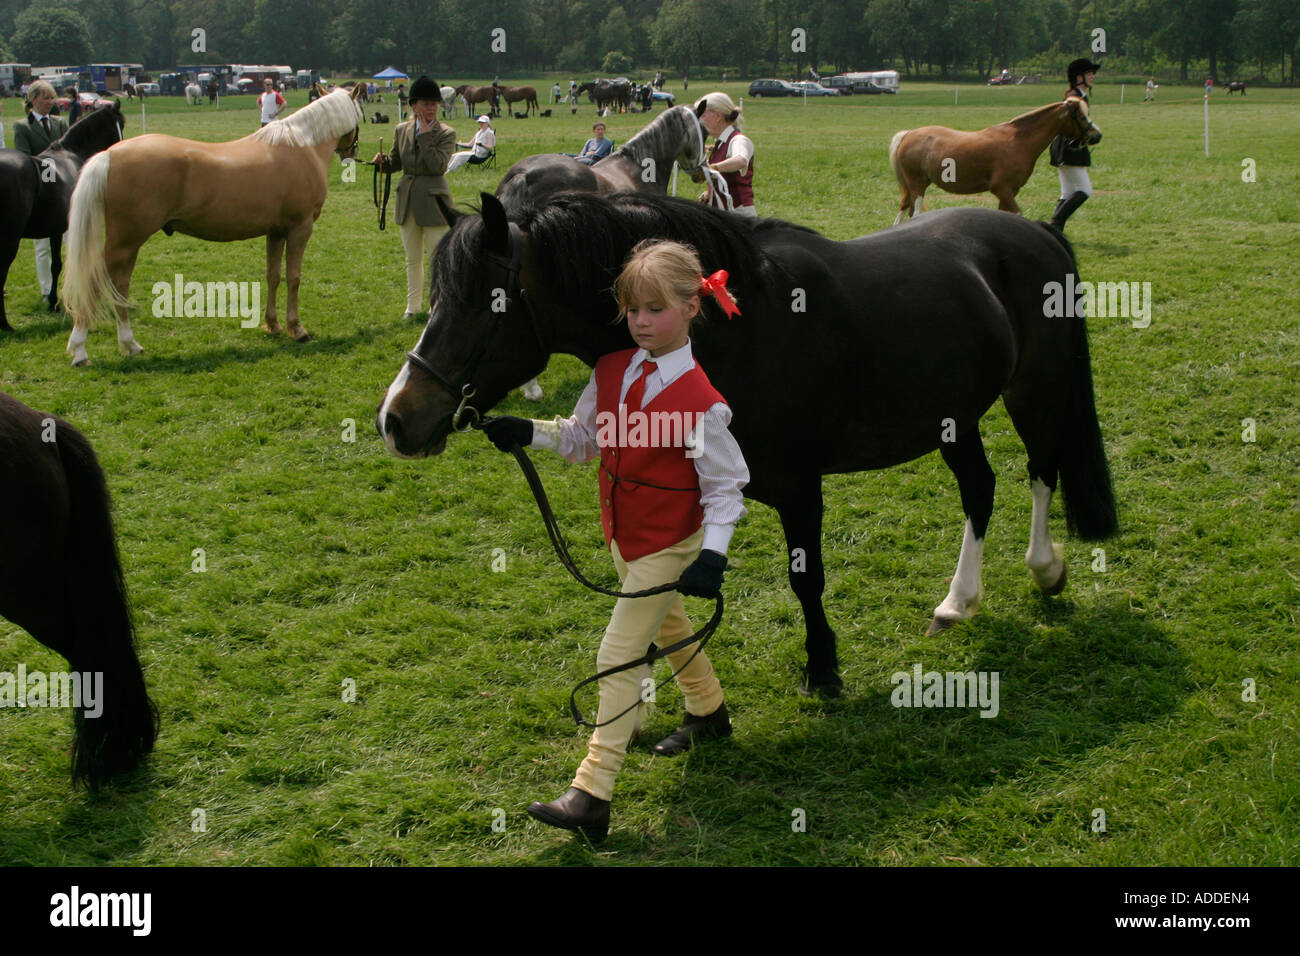 A young girl in red  walks with her pony during a competition at the South Oxfordshire Riding Club's Open Show - Stock Image